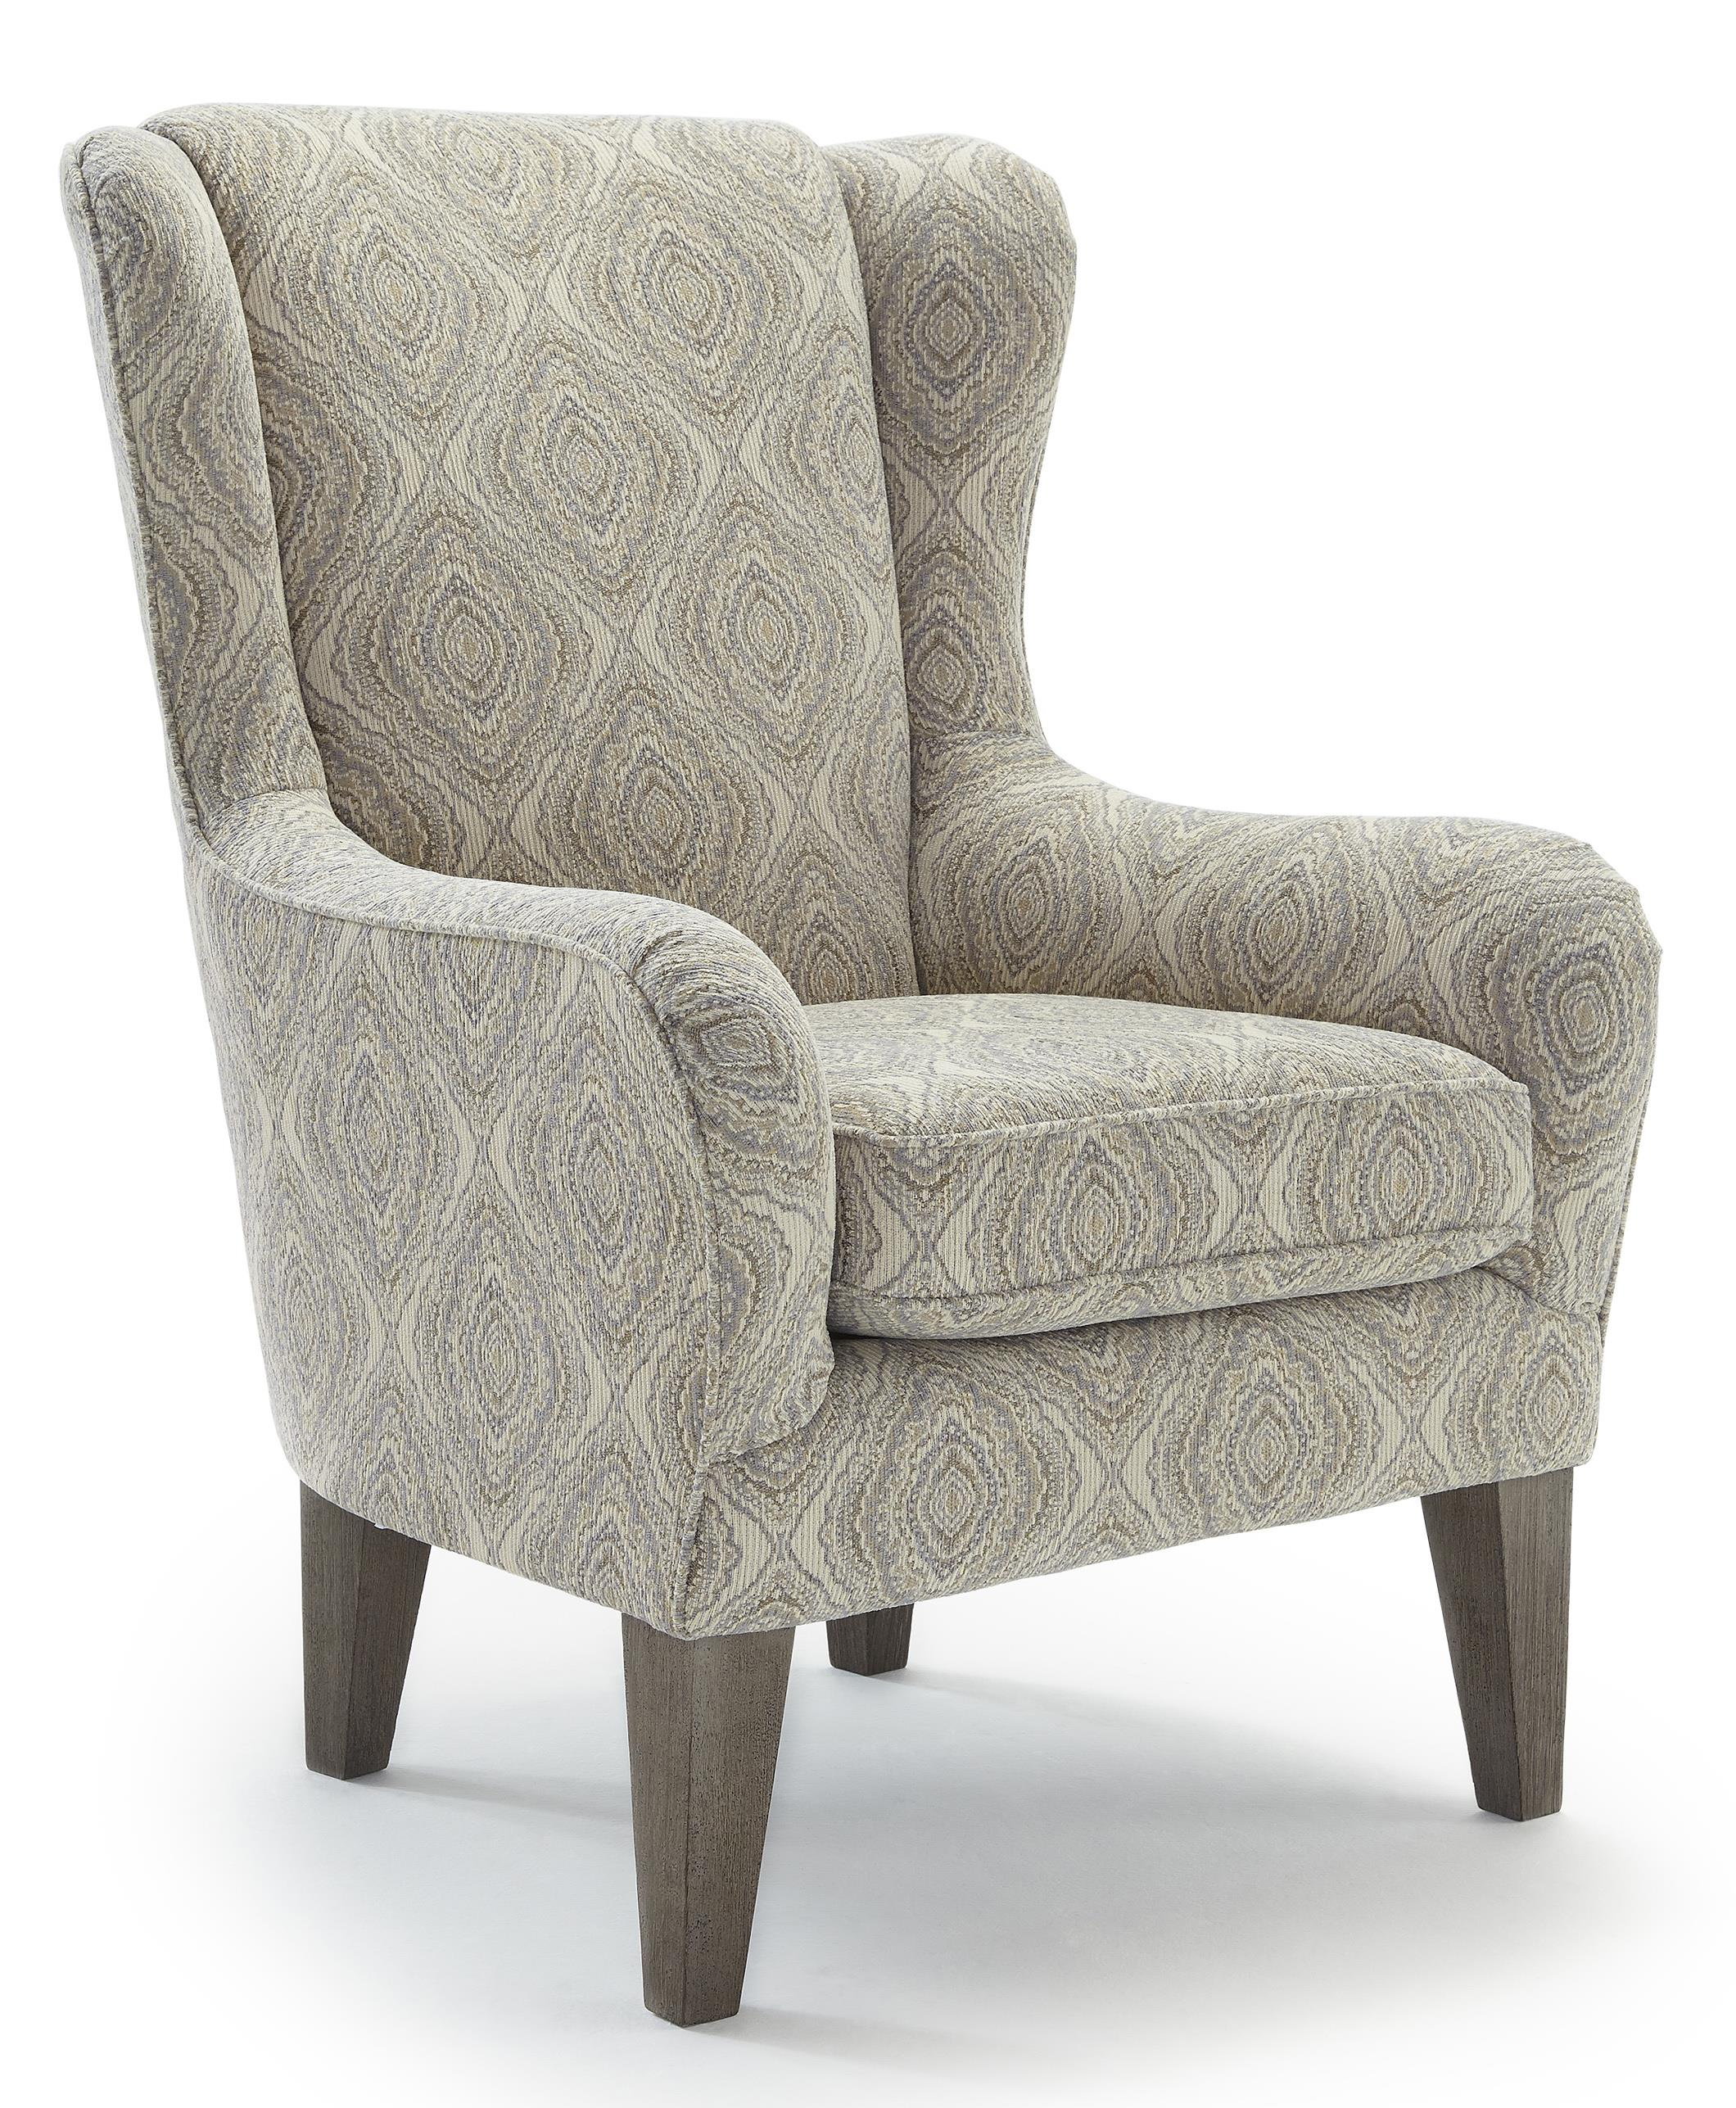 best home furnishings chairs club 7180 lorette club chair baer 39 s furniture wing chairs. Black Bedroom Furniture Sets. Home Design Ideas